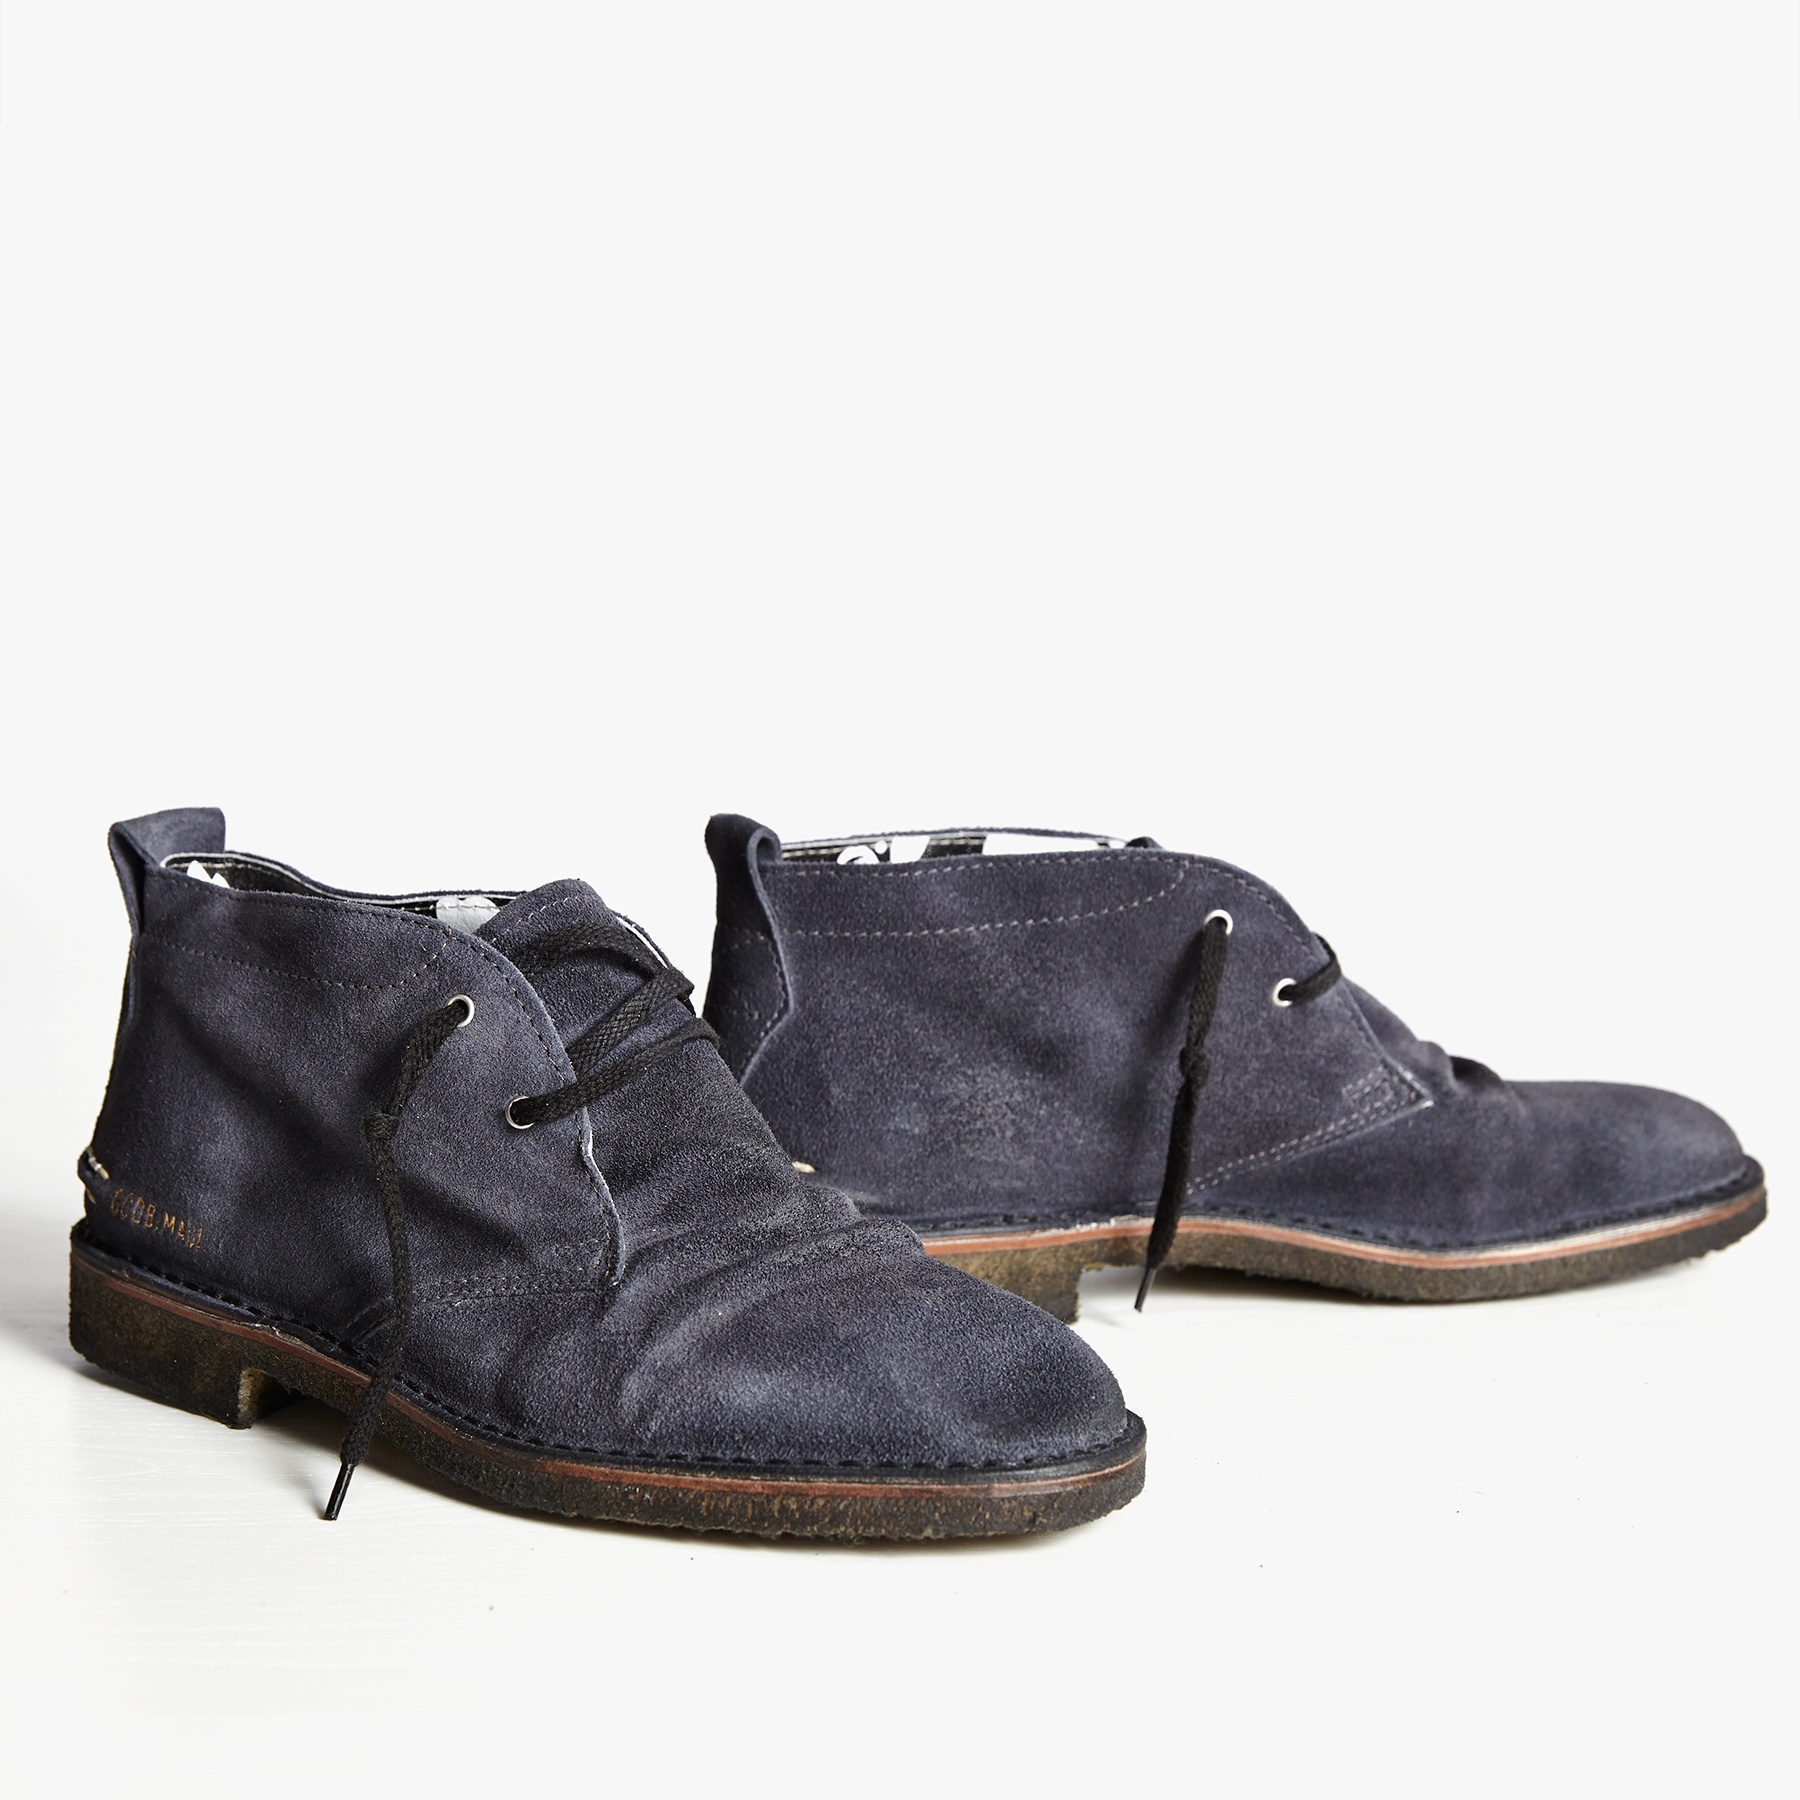 golden goose mens chukka boot in gray for